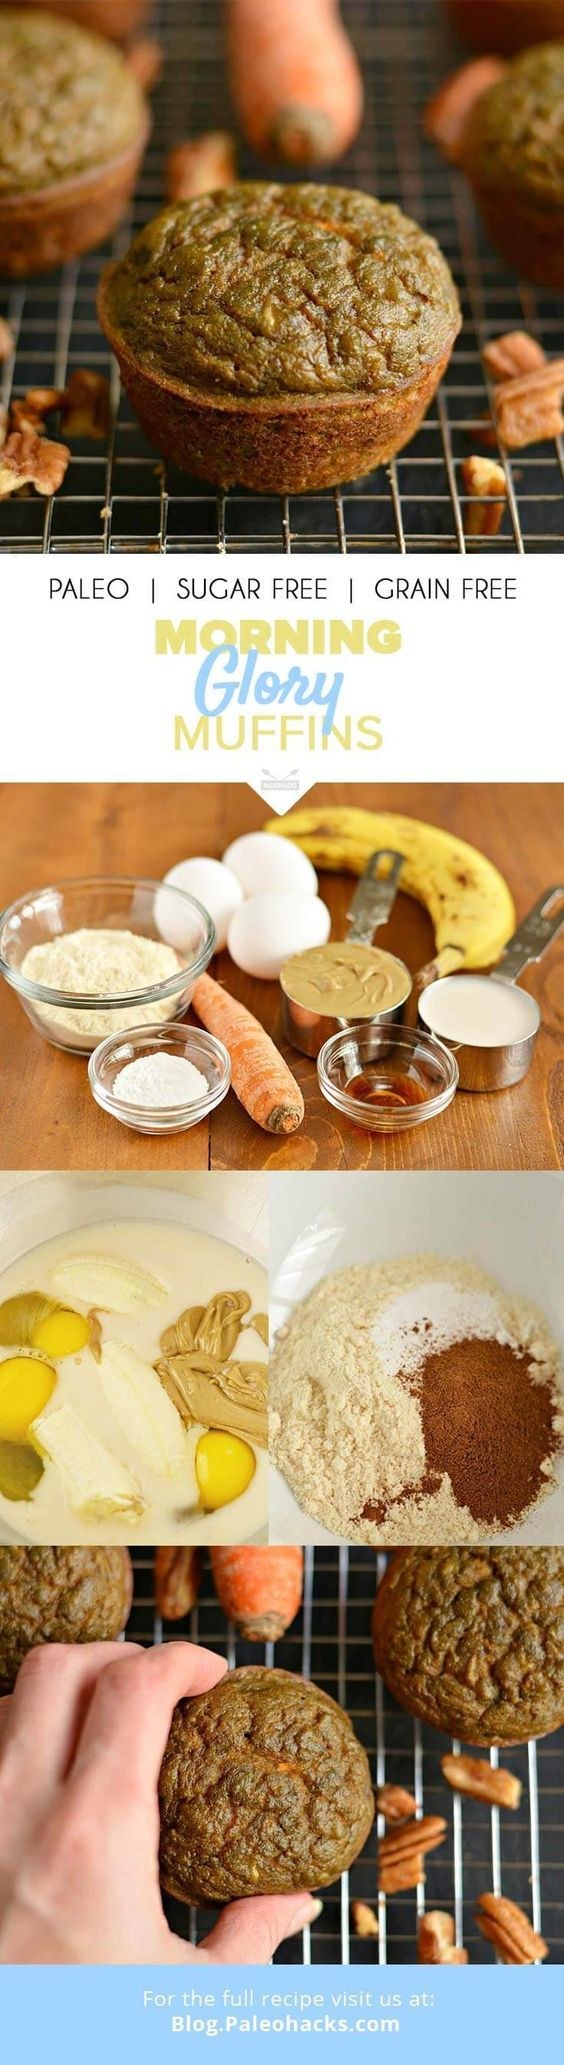 Paleo Morning Glory Muffins are loaded with carrots, bananas, and creamy sunflower butter. A grain, dairy, and nut-free snack, and it has no added sugar! Get the recipe here: http://paleo.co/morningglorymuffin